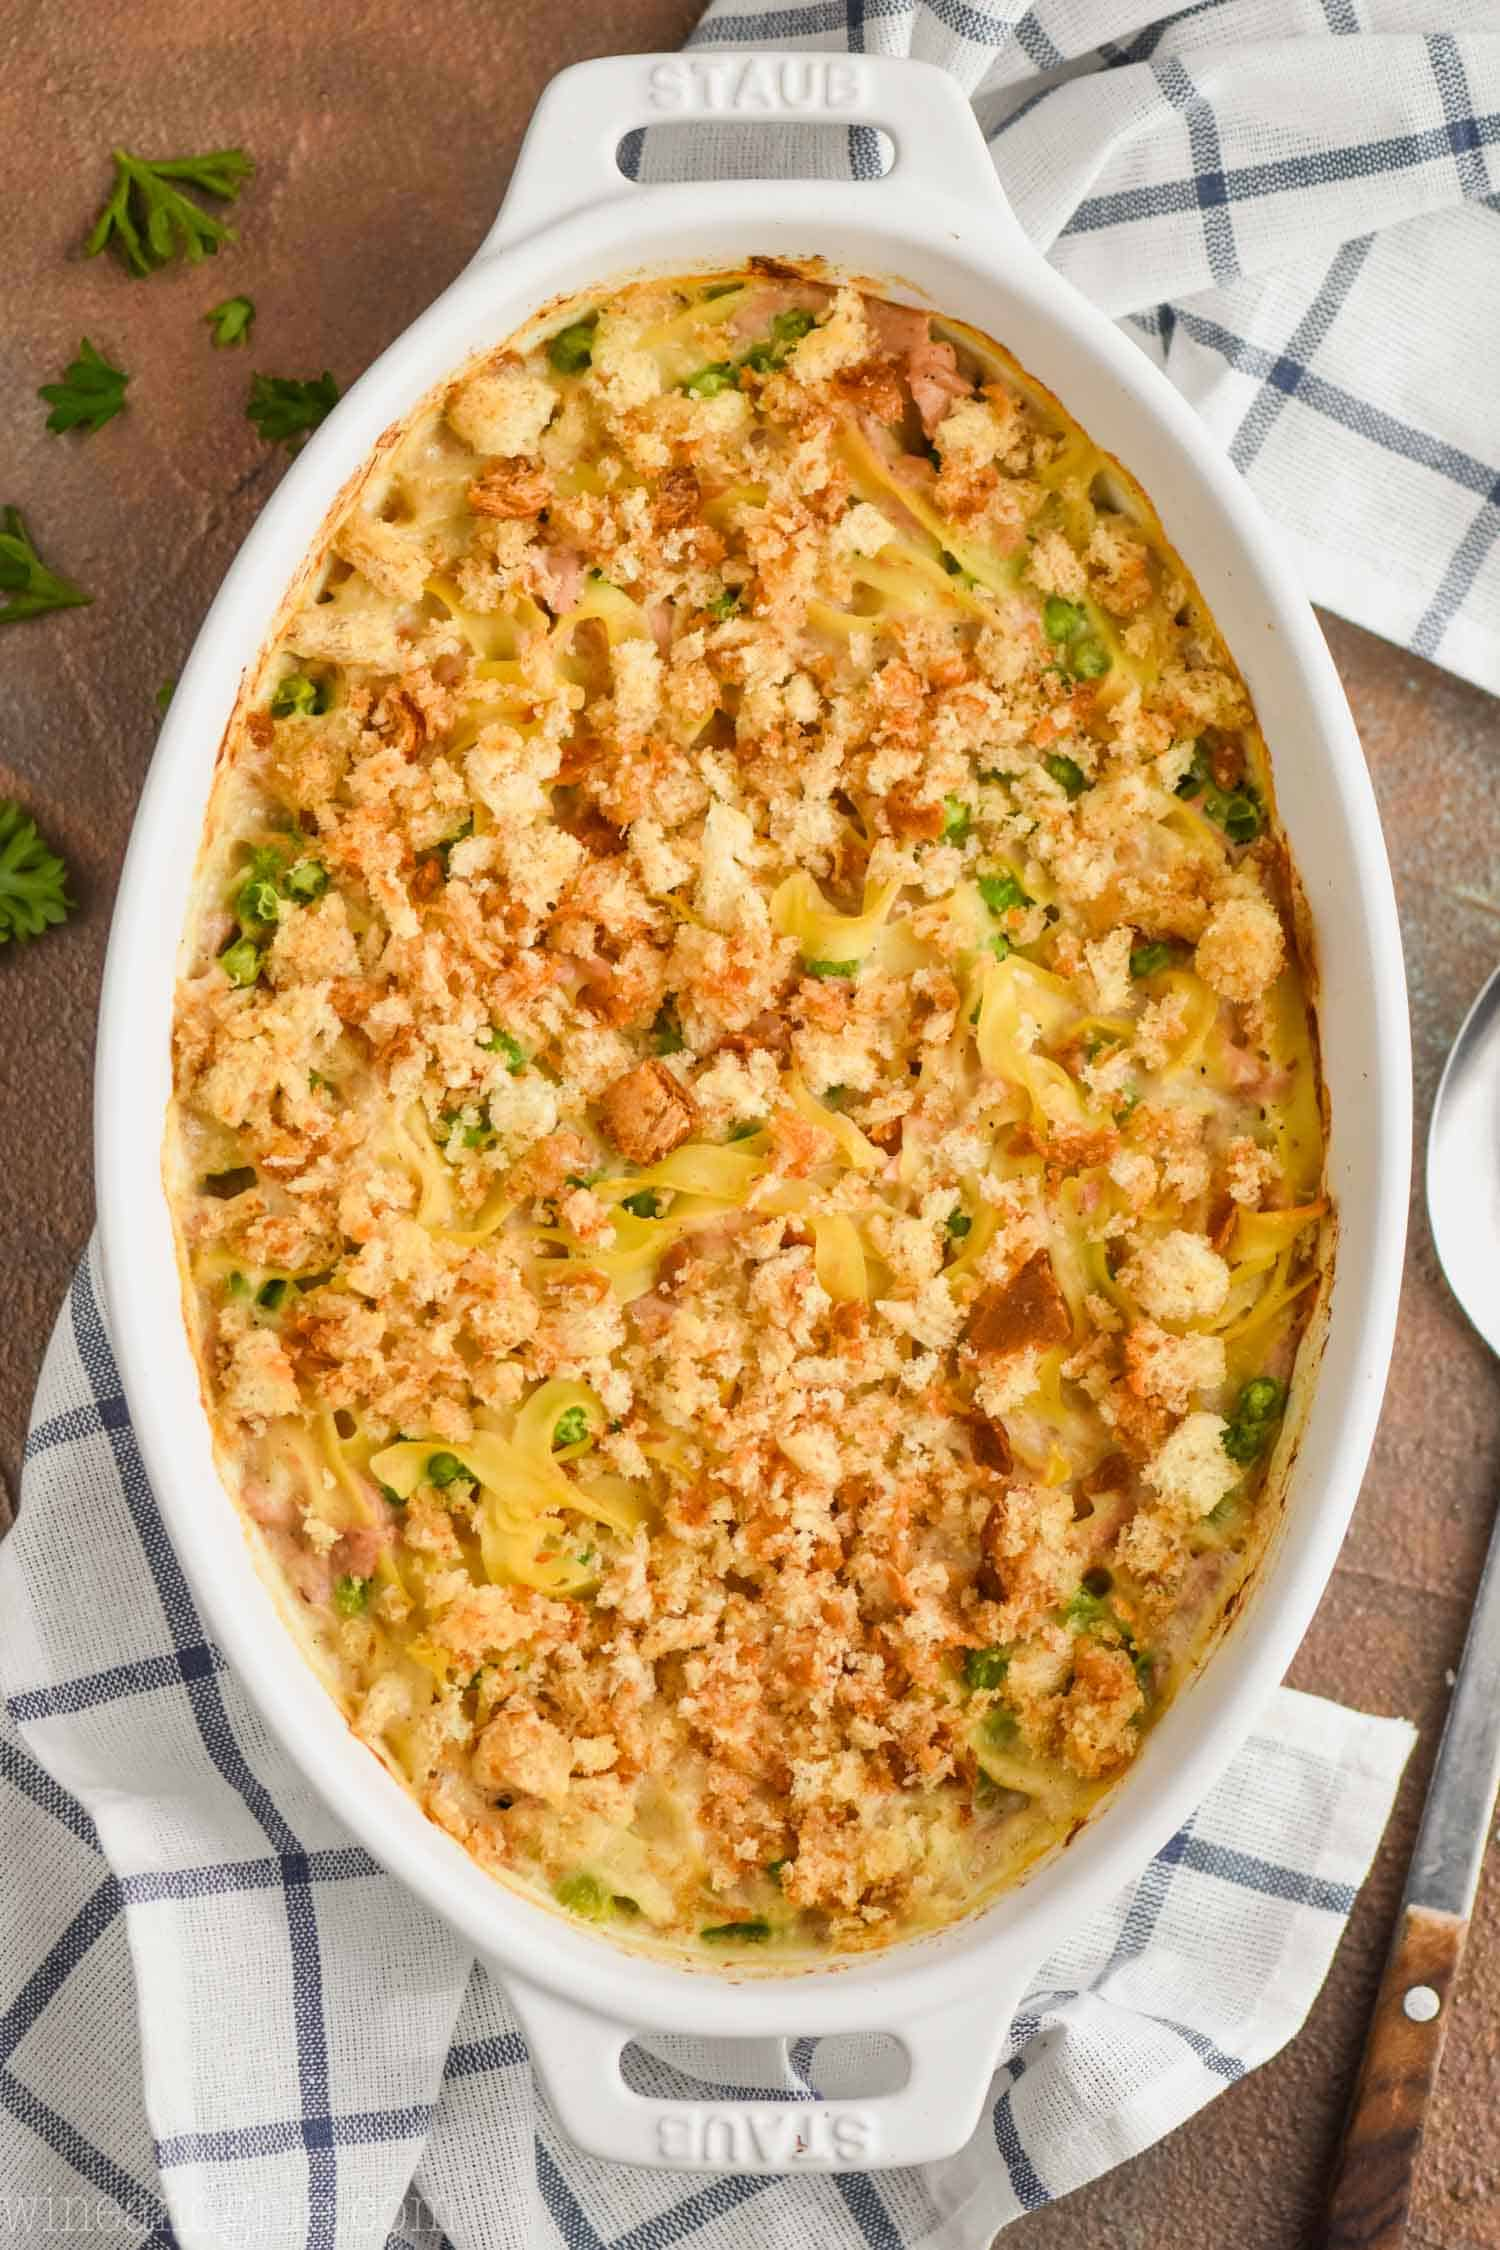 EASY TUNA NOODLE CASSEROLE RECIPE